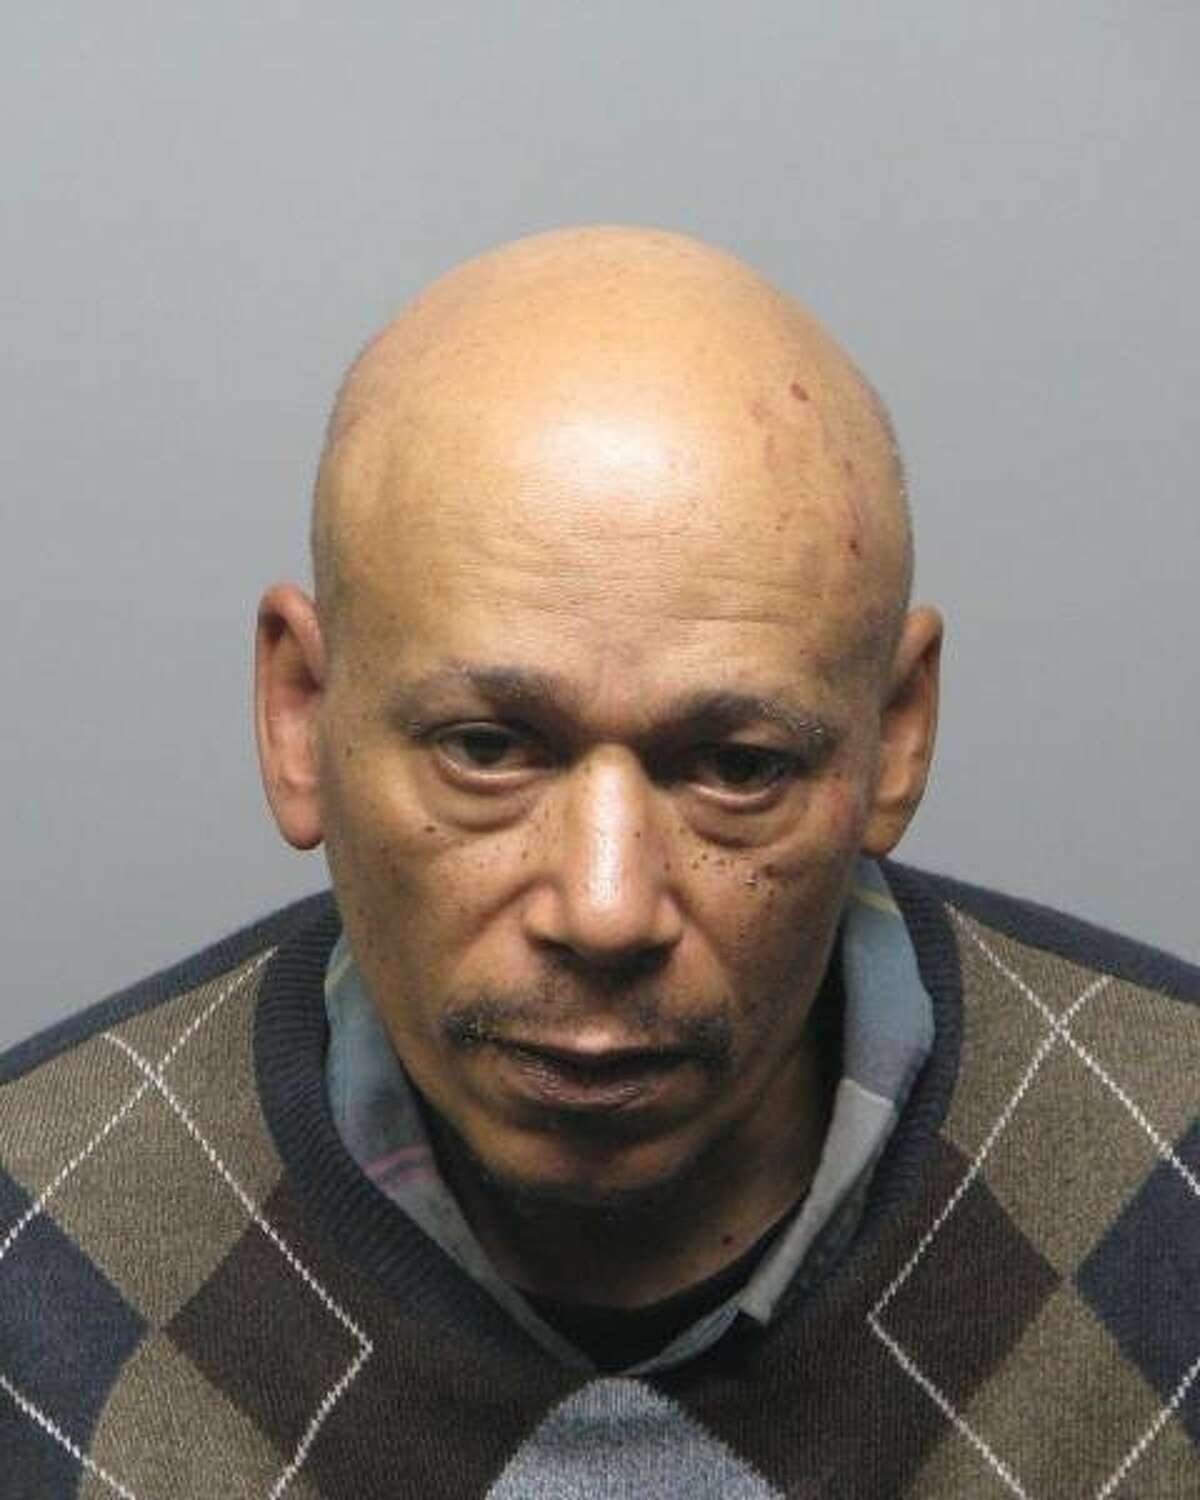 57-year-old James Lipston of Clayton faces felony burglary charges in Contra Costa County after investigators linked him to more than six East Bay residential burglaries.